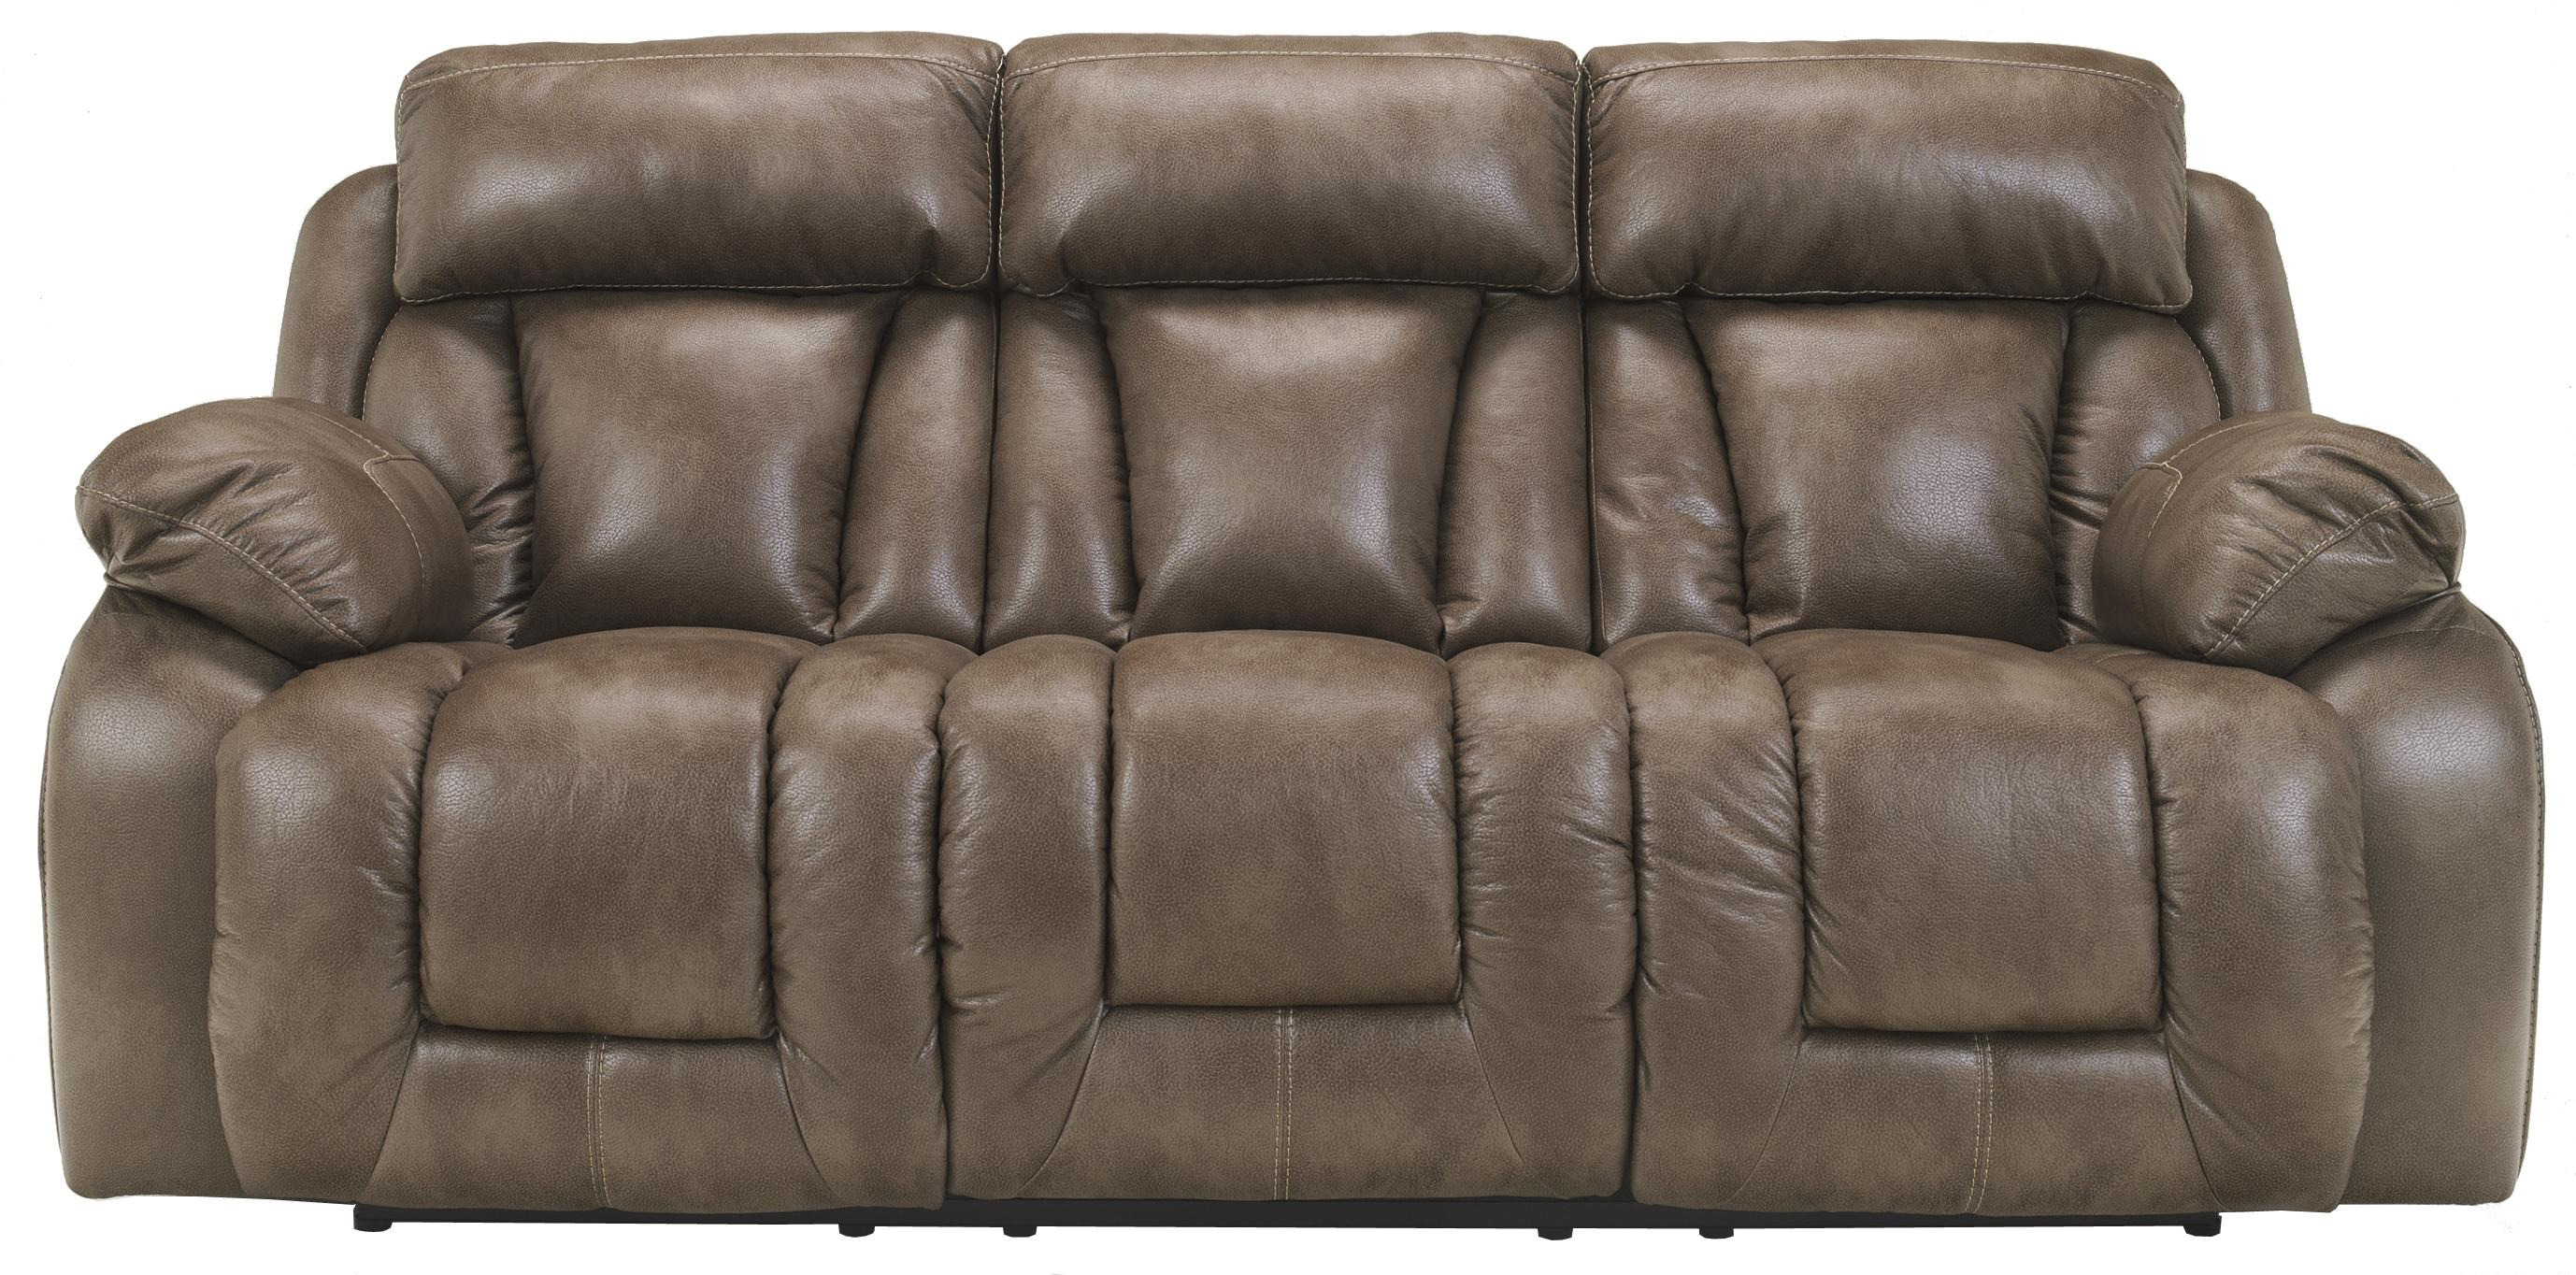 Ashley Furniture Loral - Sable Reclining Power Sofa - Item Number: 4220087